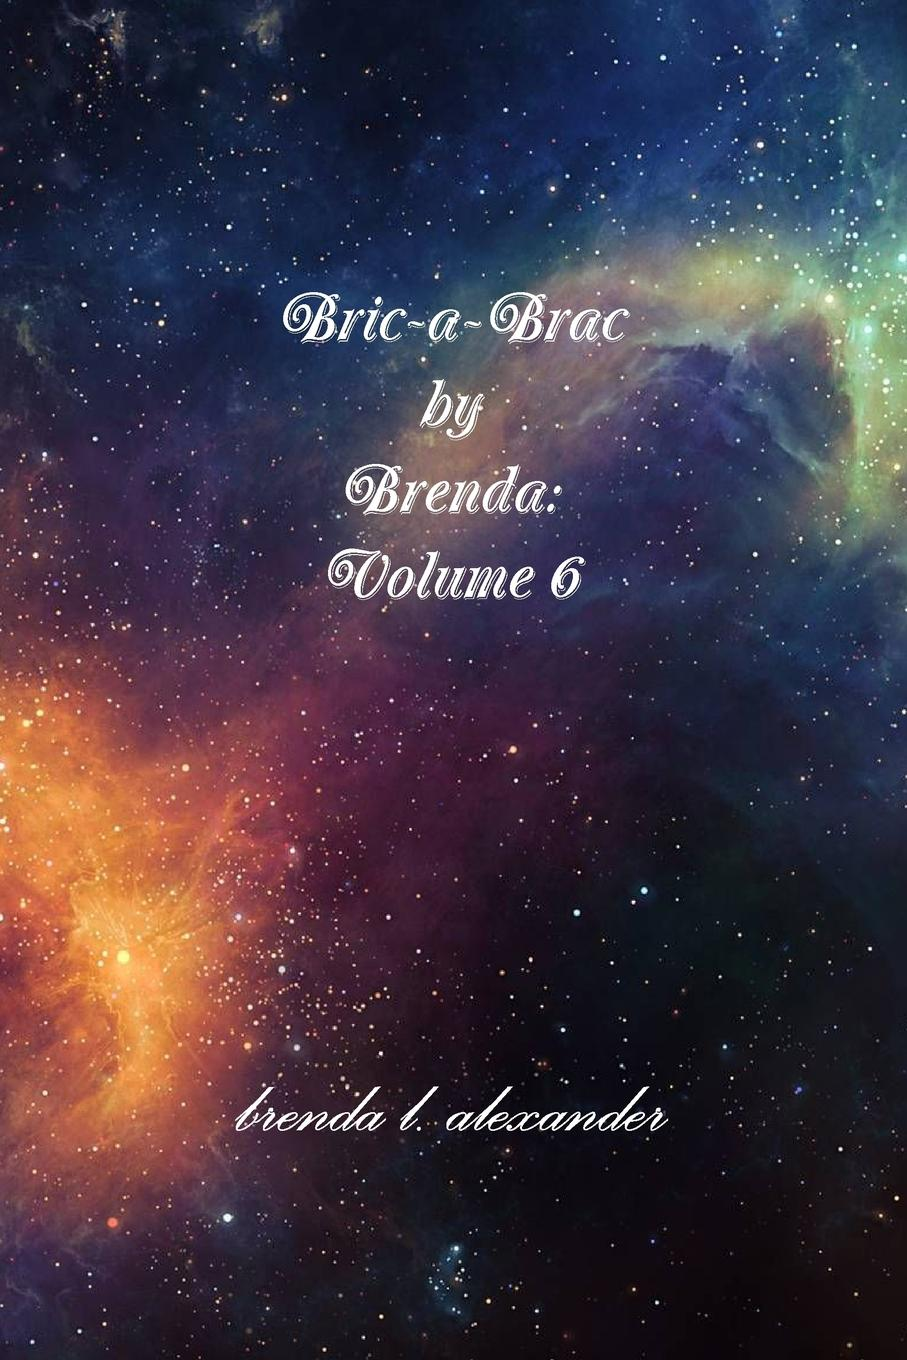 бренда ли brenda lee brenda that s all all alone am i brenda alexander Bric-a-Brac by Brenda. Volume 6